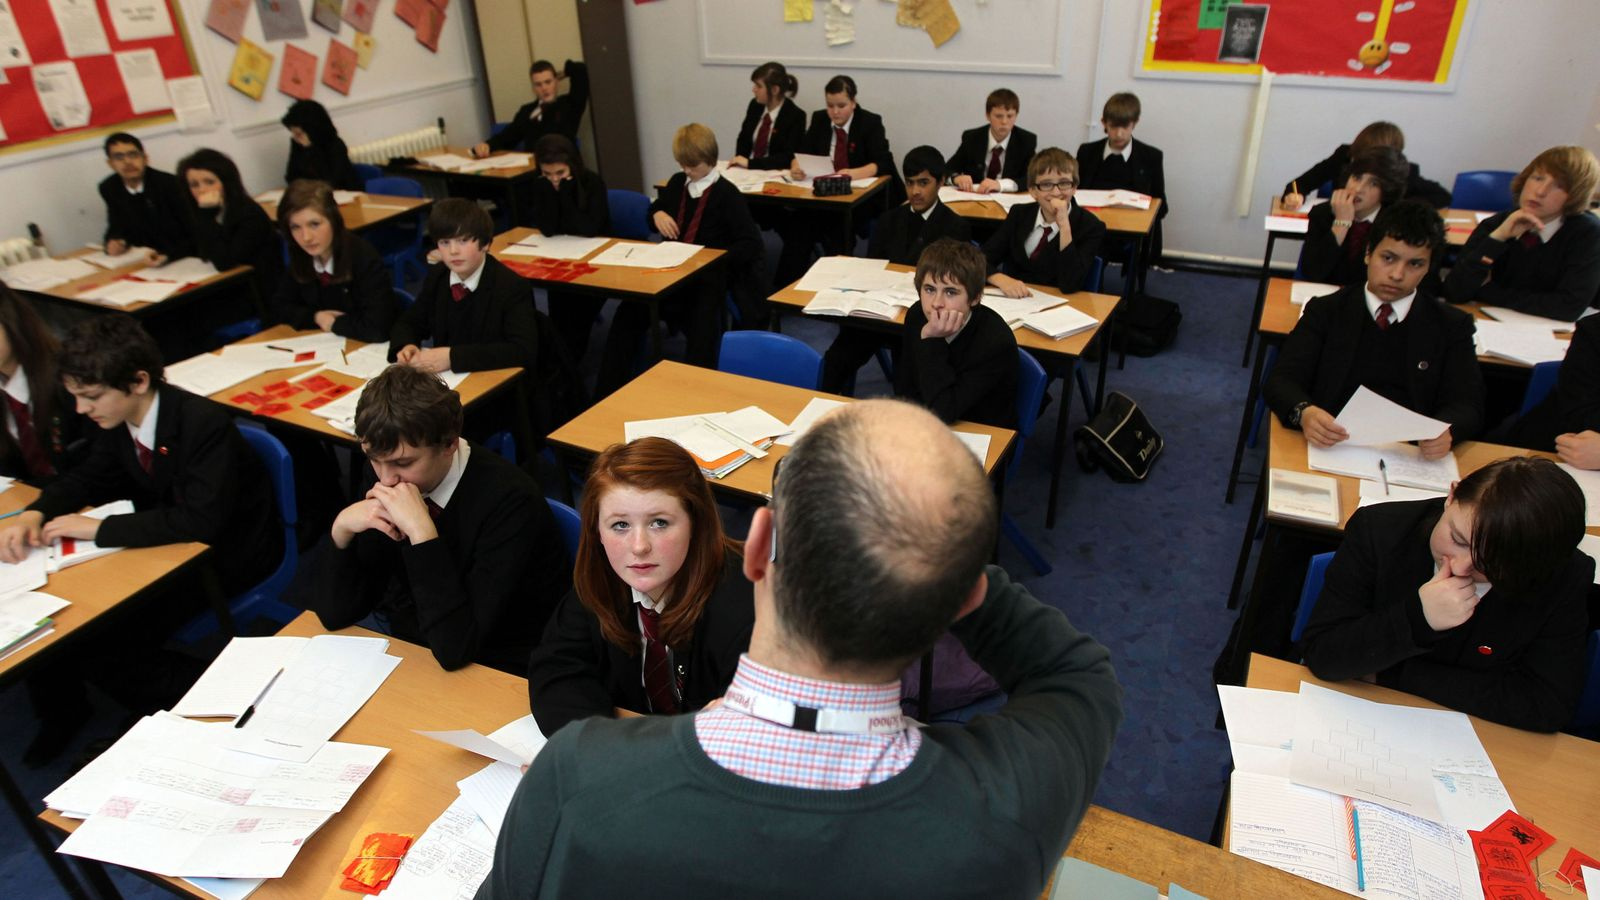 Physics and maths teachers are in short supply